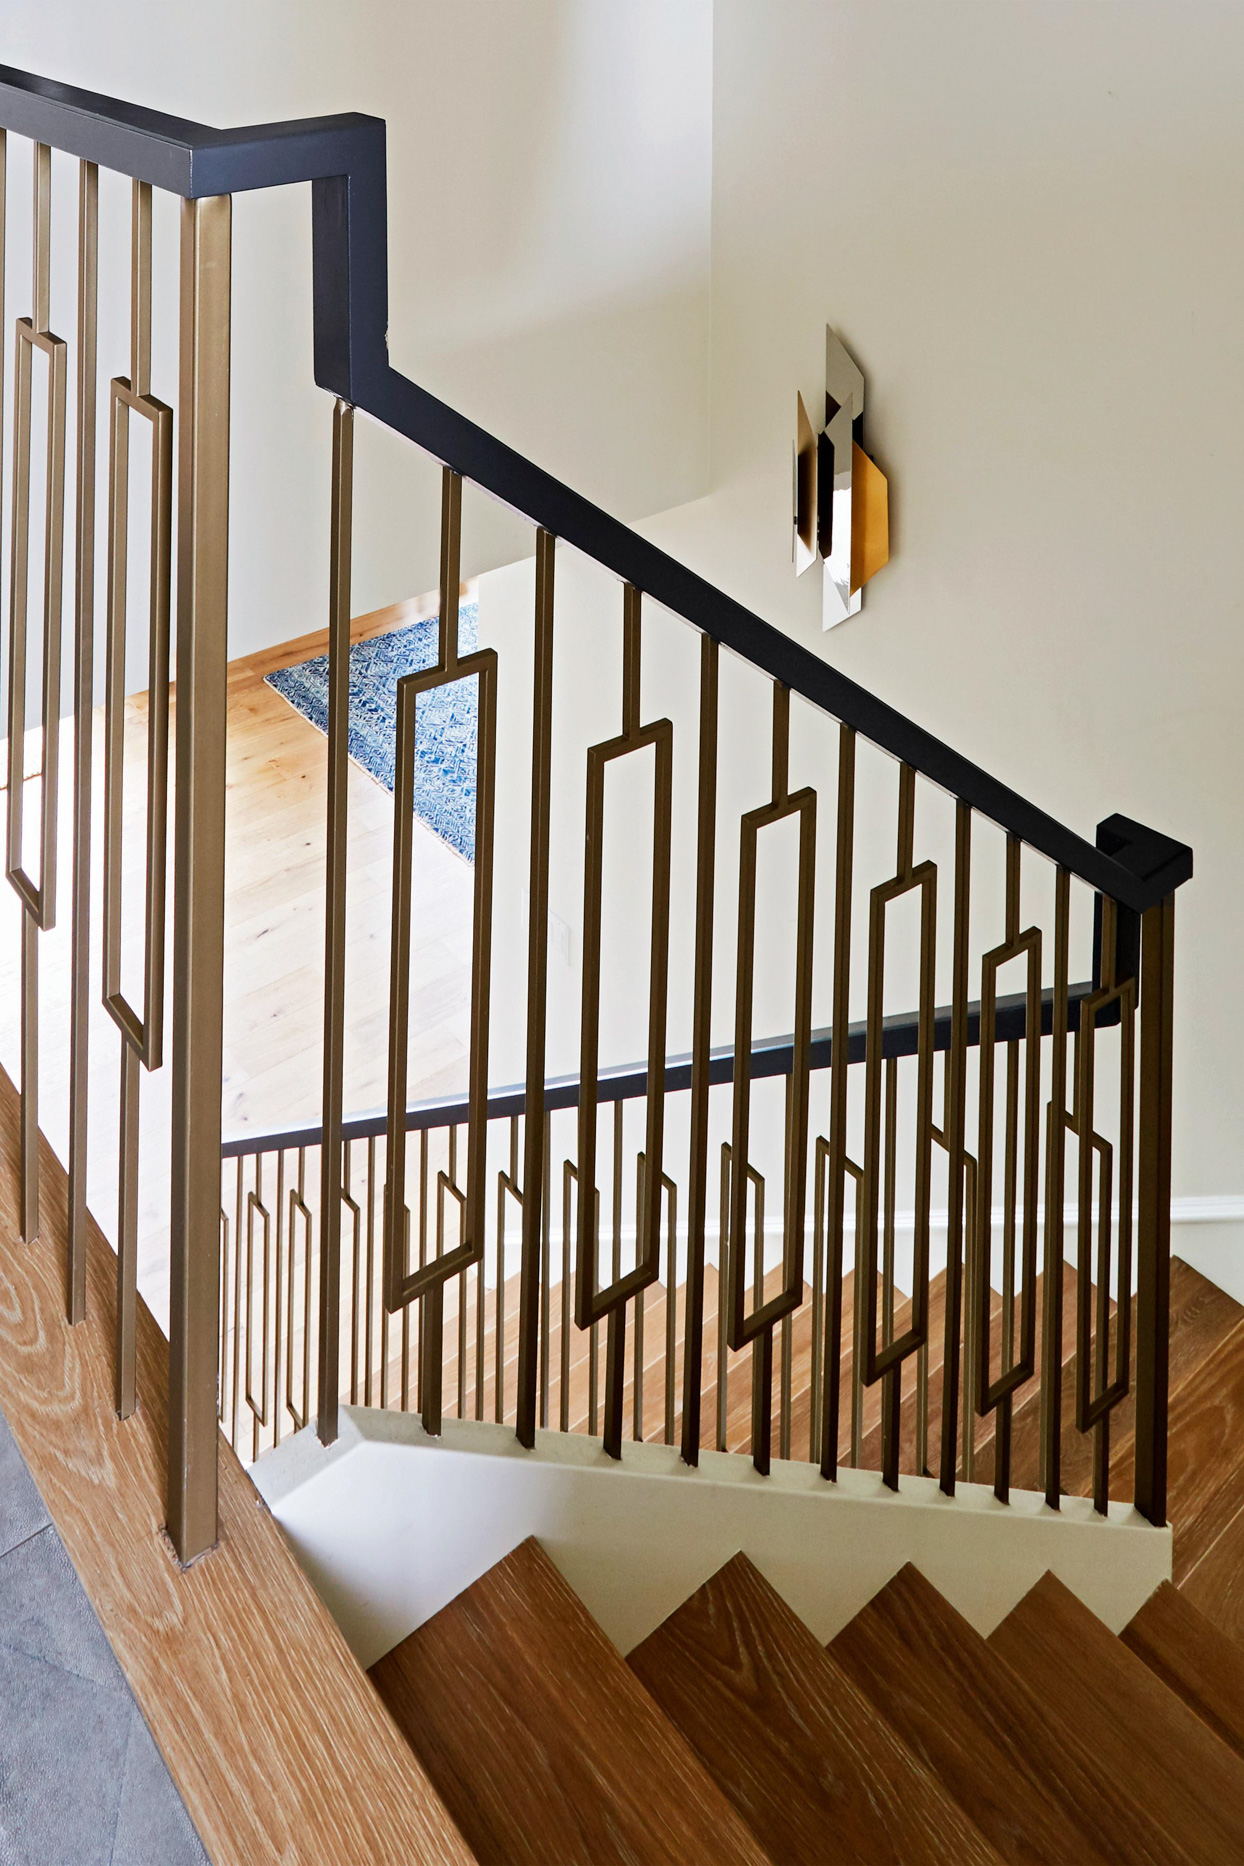 retro 70s-style staircase geometric forms